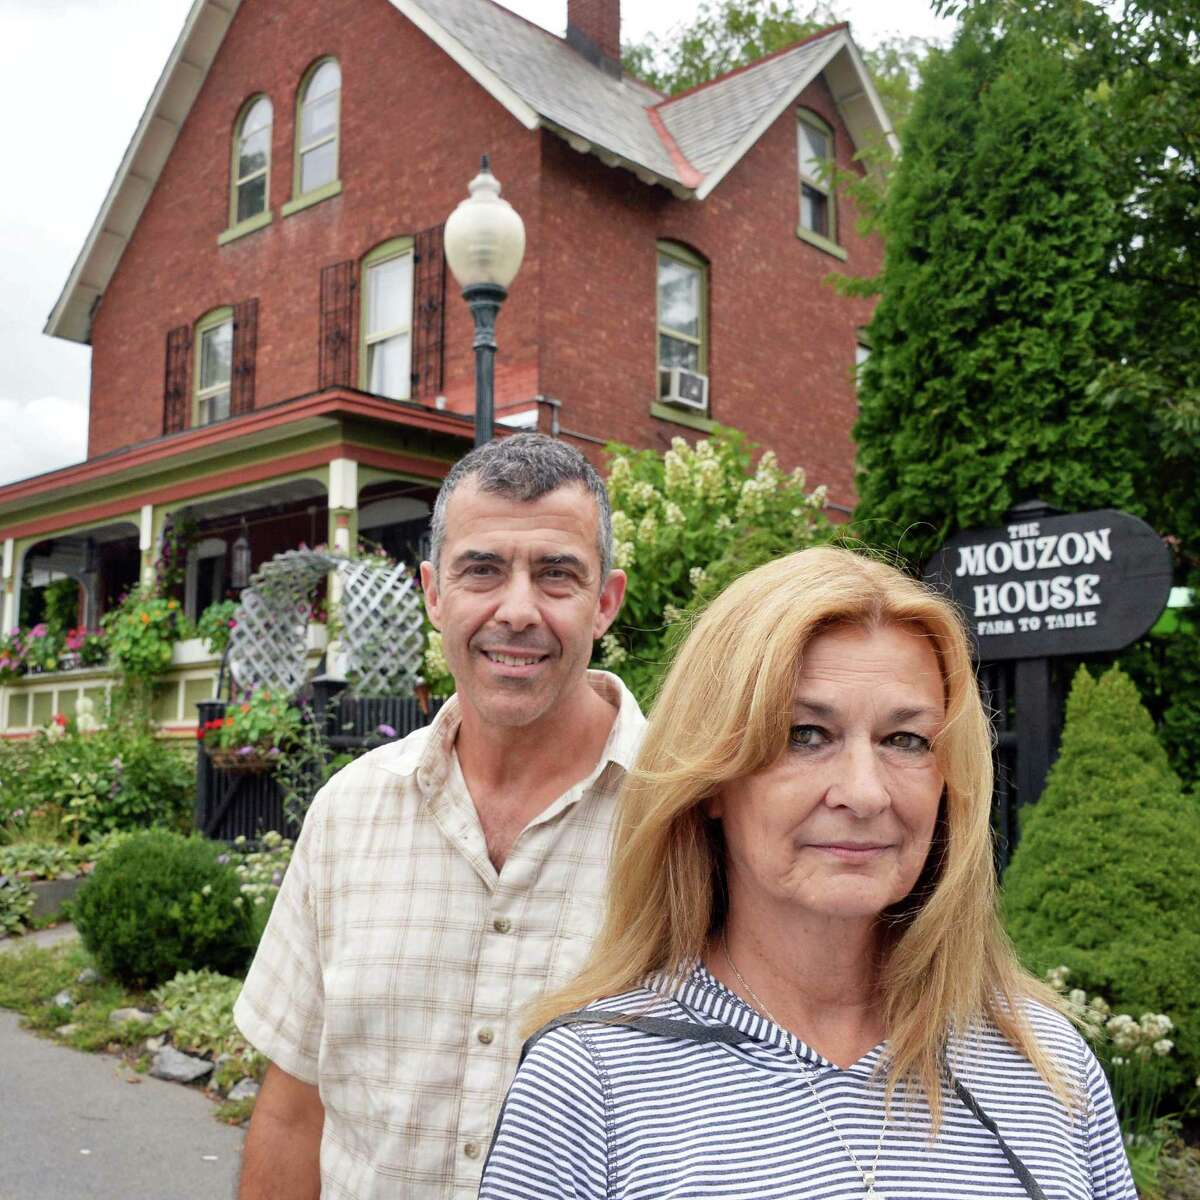 David and Dianne Pedinotti, husband and wife co-owners of the Mouzon House outside their restaurant Thursday Sept. 10, 2015 in Saratoga Springs, NY. They are in a legal battle to stop the proposed city center's high-rise garage from being built next to their restaurant. (John Carl D'Annibale / Times Union)